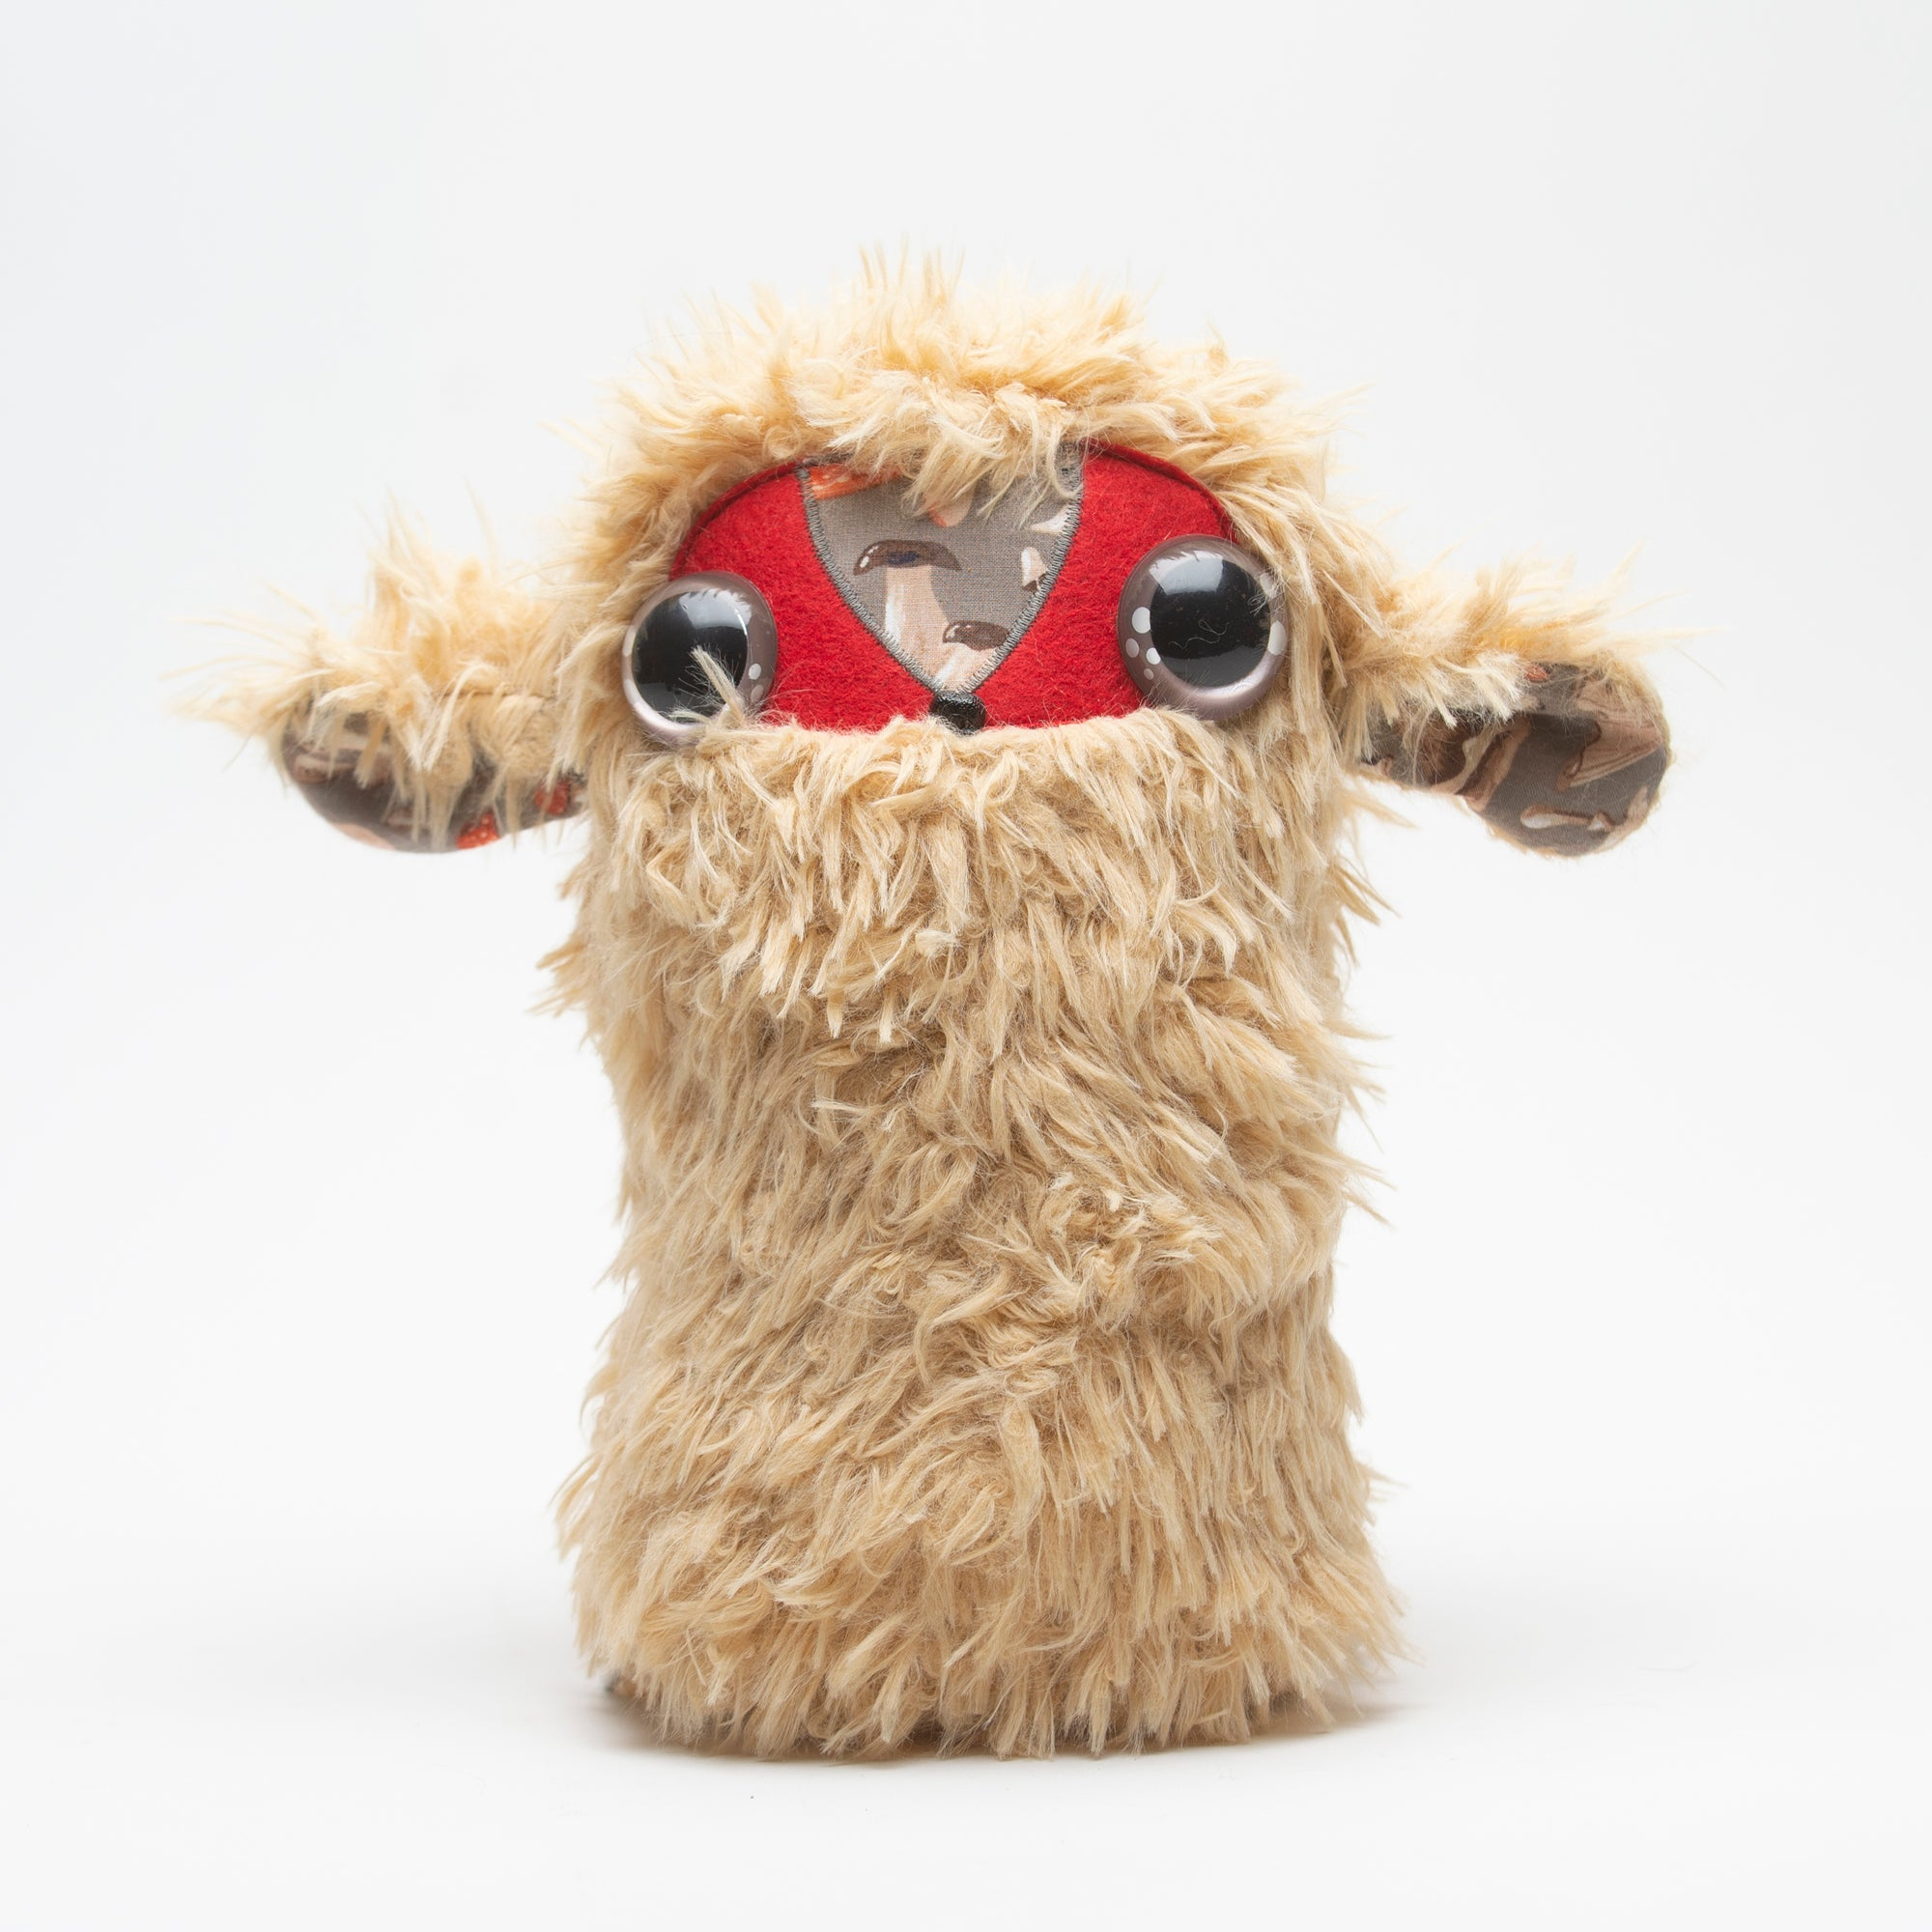 Cool Critter Stuffed Animal - Tan Furry + Mushroom Detail, Cool Critters, Handcrafted Home Goods and Gifts